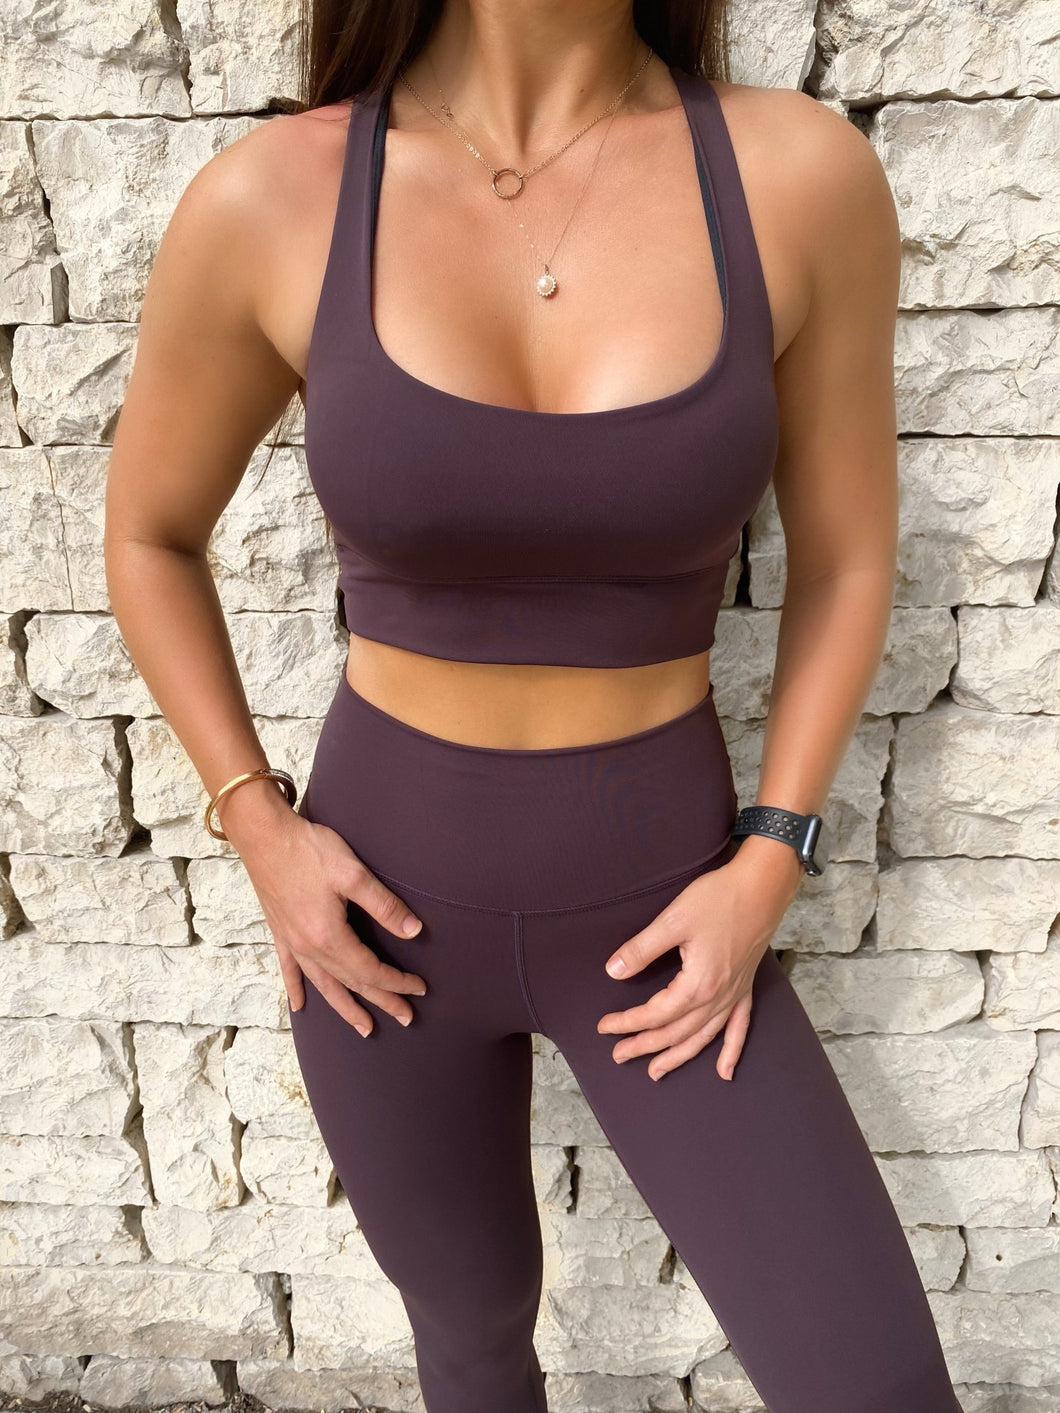 MOOD Yoga Top - NickyBikini